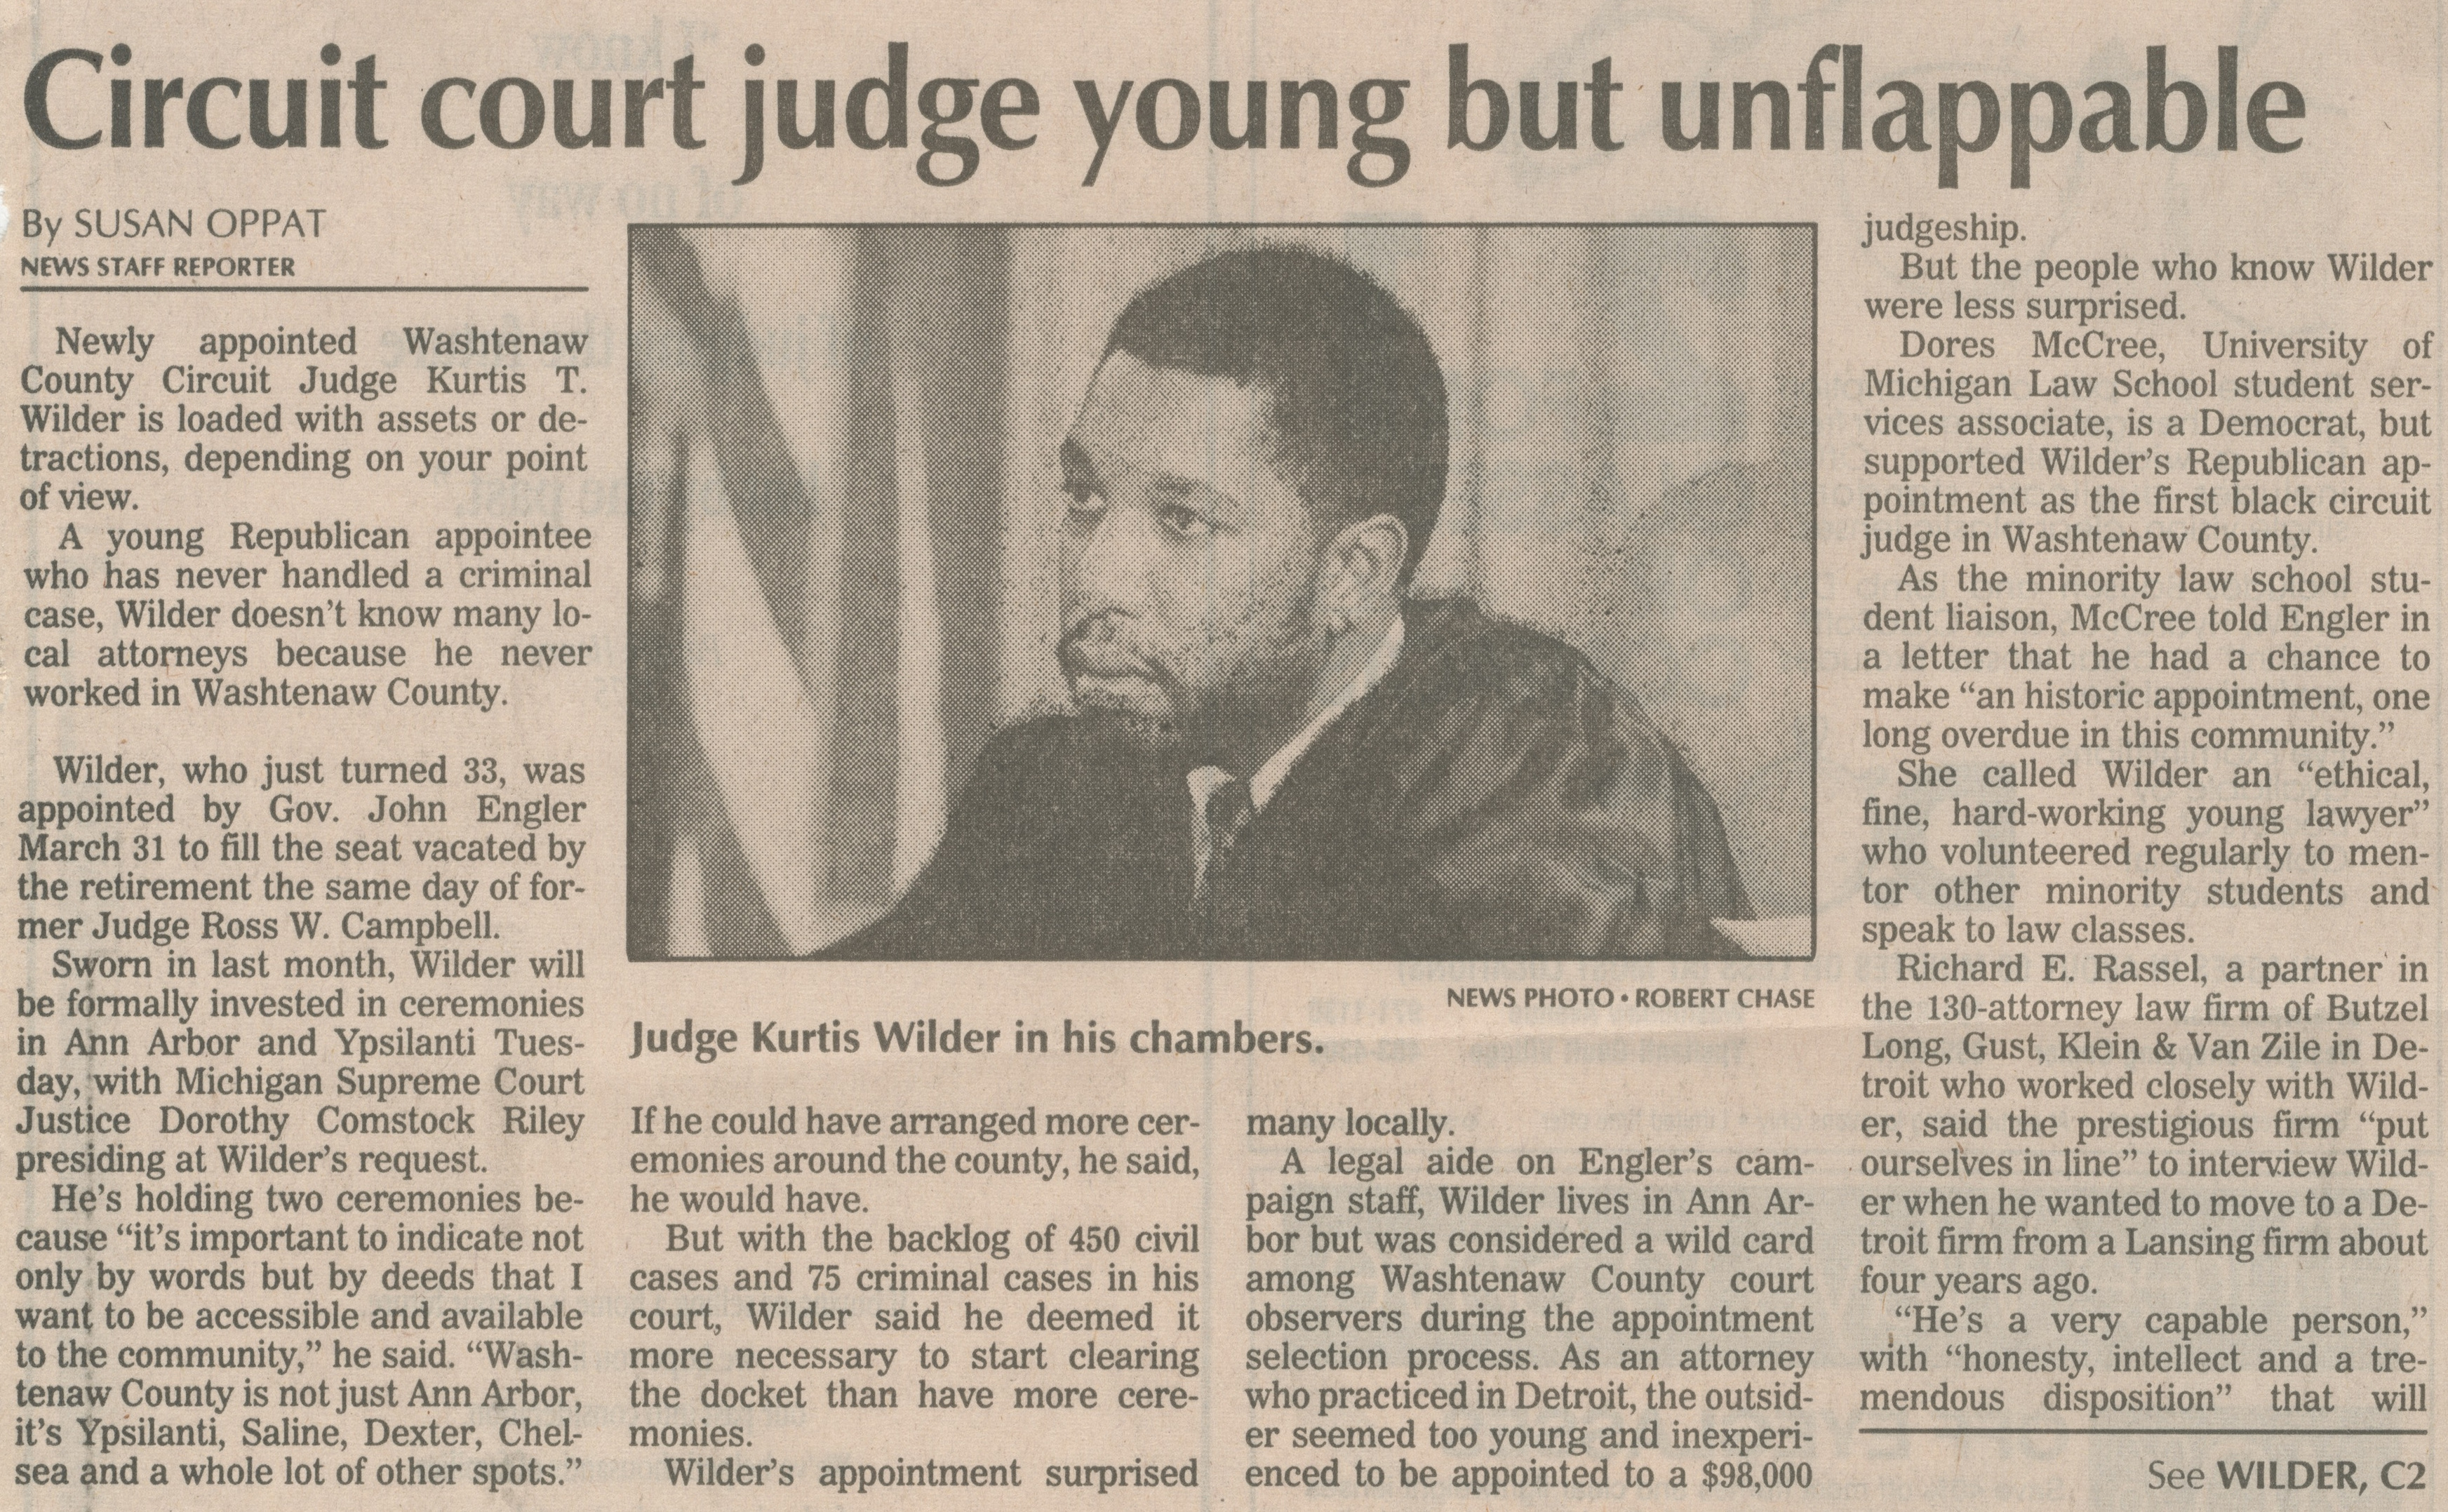 Circuit Court Judge Young But Unflappable image